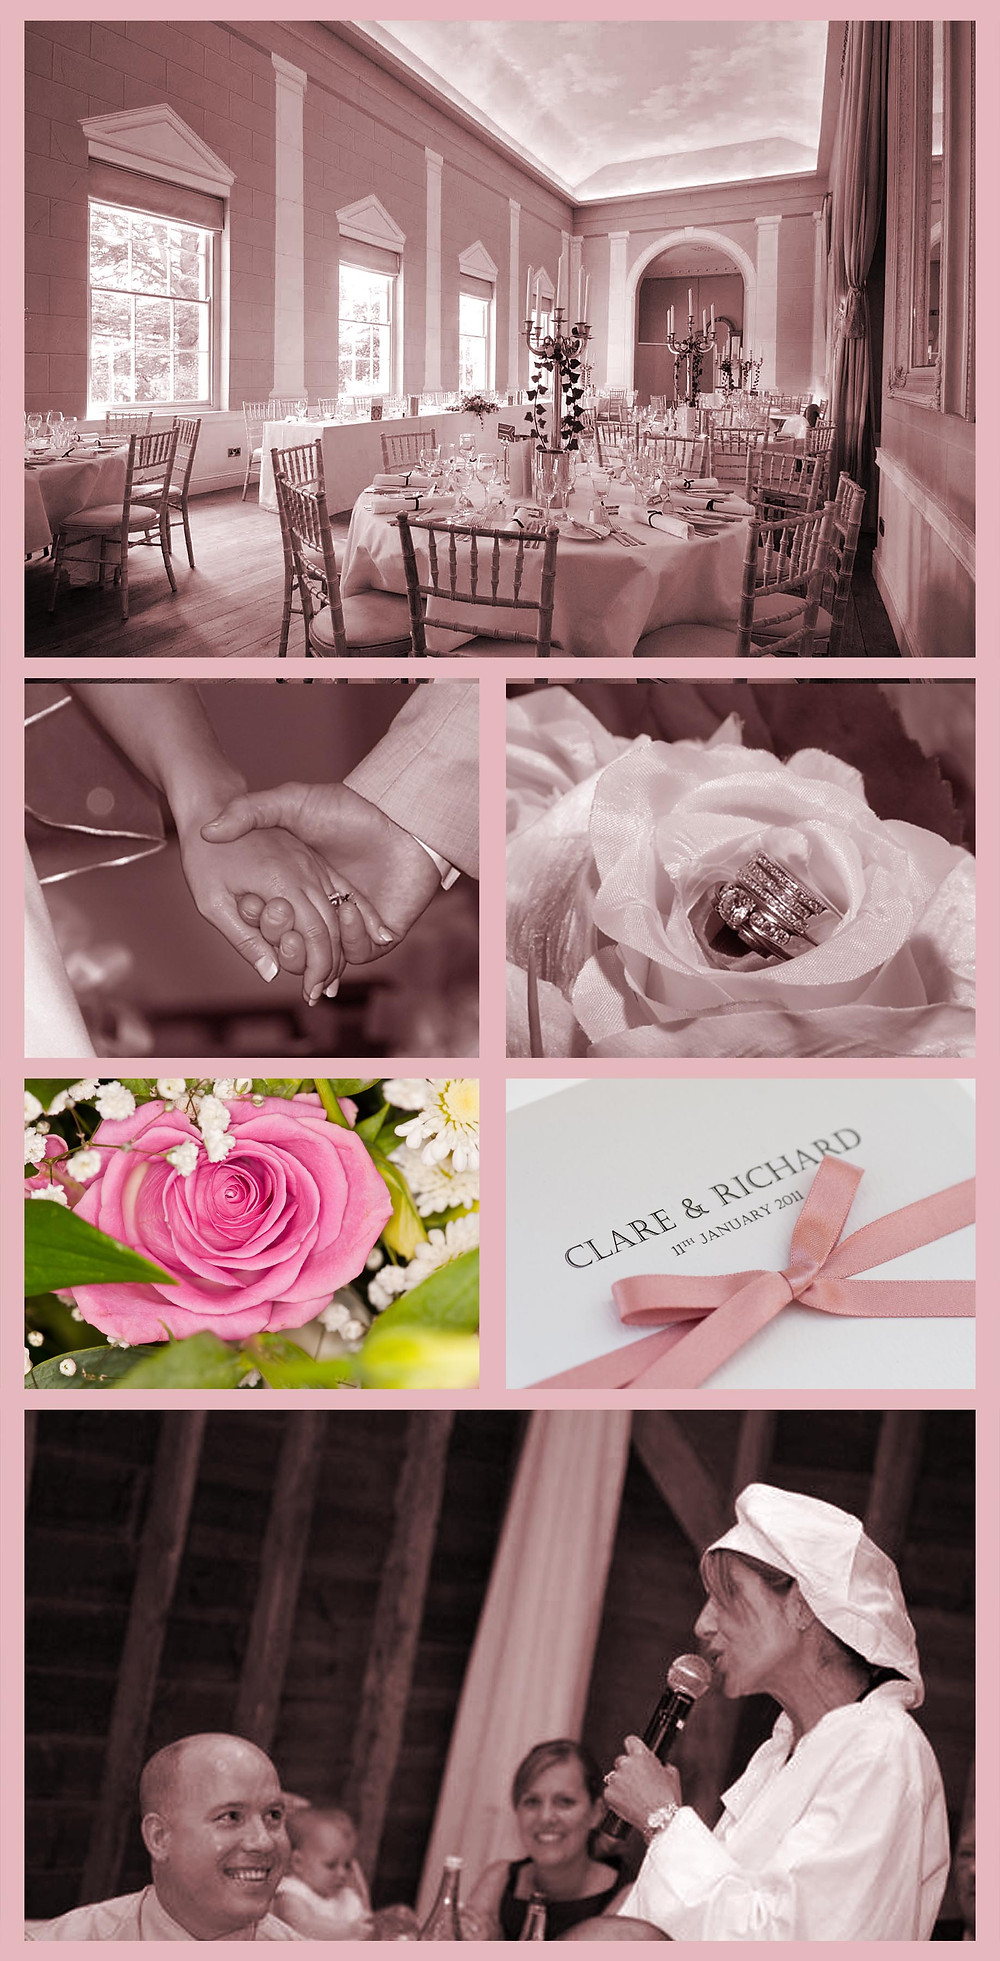 Gorgeous Wedding venue, invitations flowers and rings